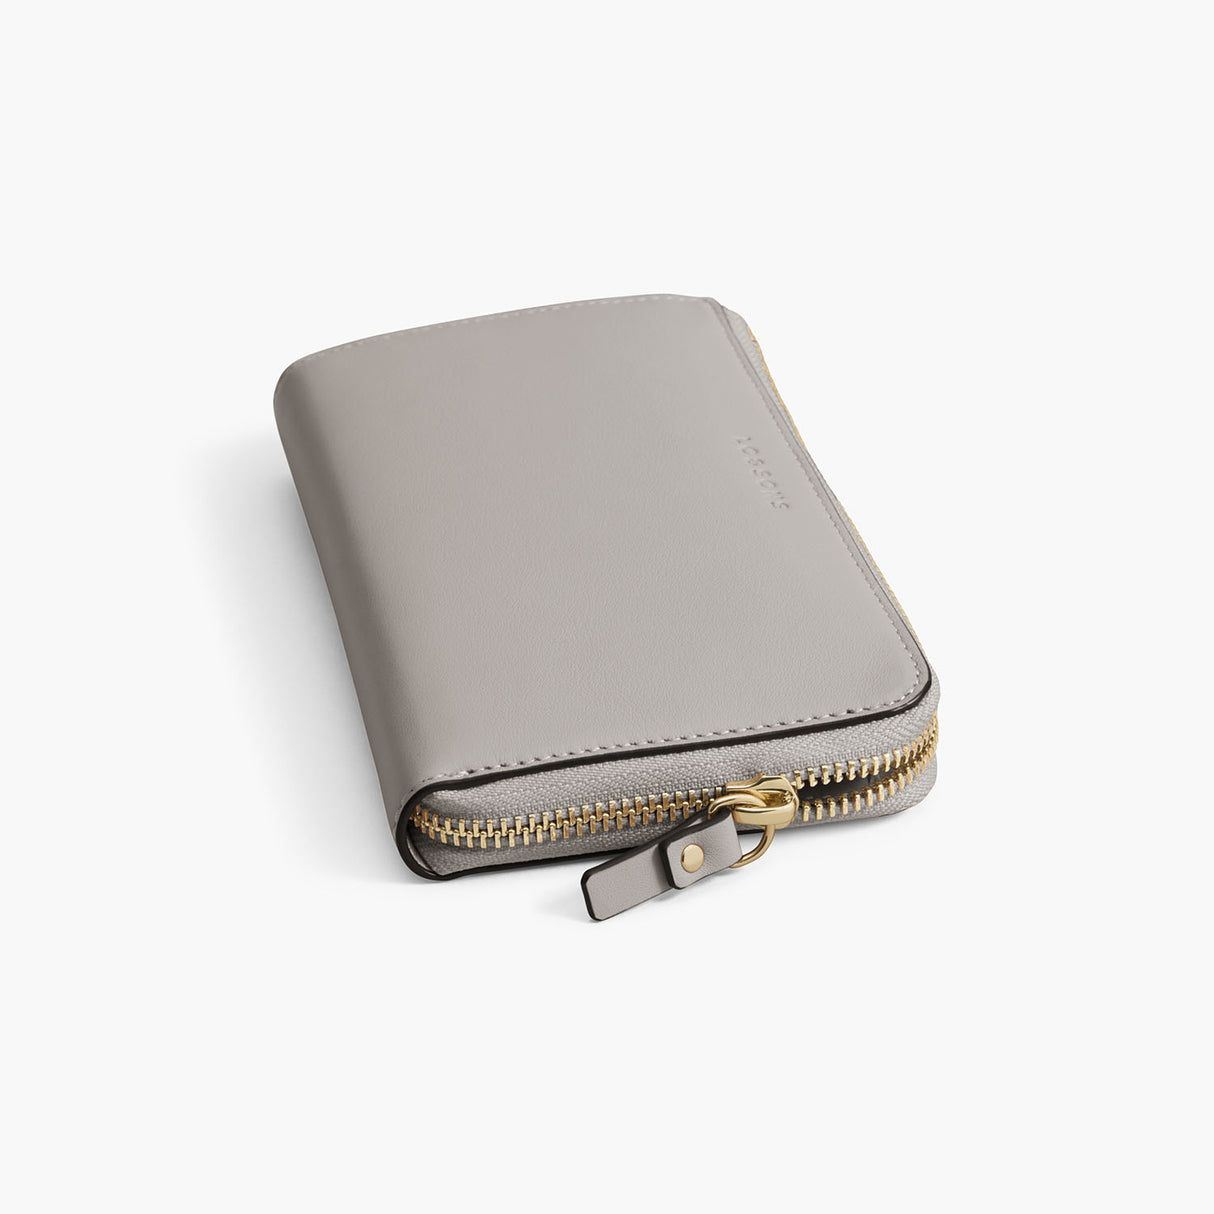 Zipper Detail - The Leather Wallet - Nappa Leather - Light Grey / Gold / Grey - Small Accessory - Lo & Sons